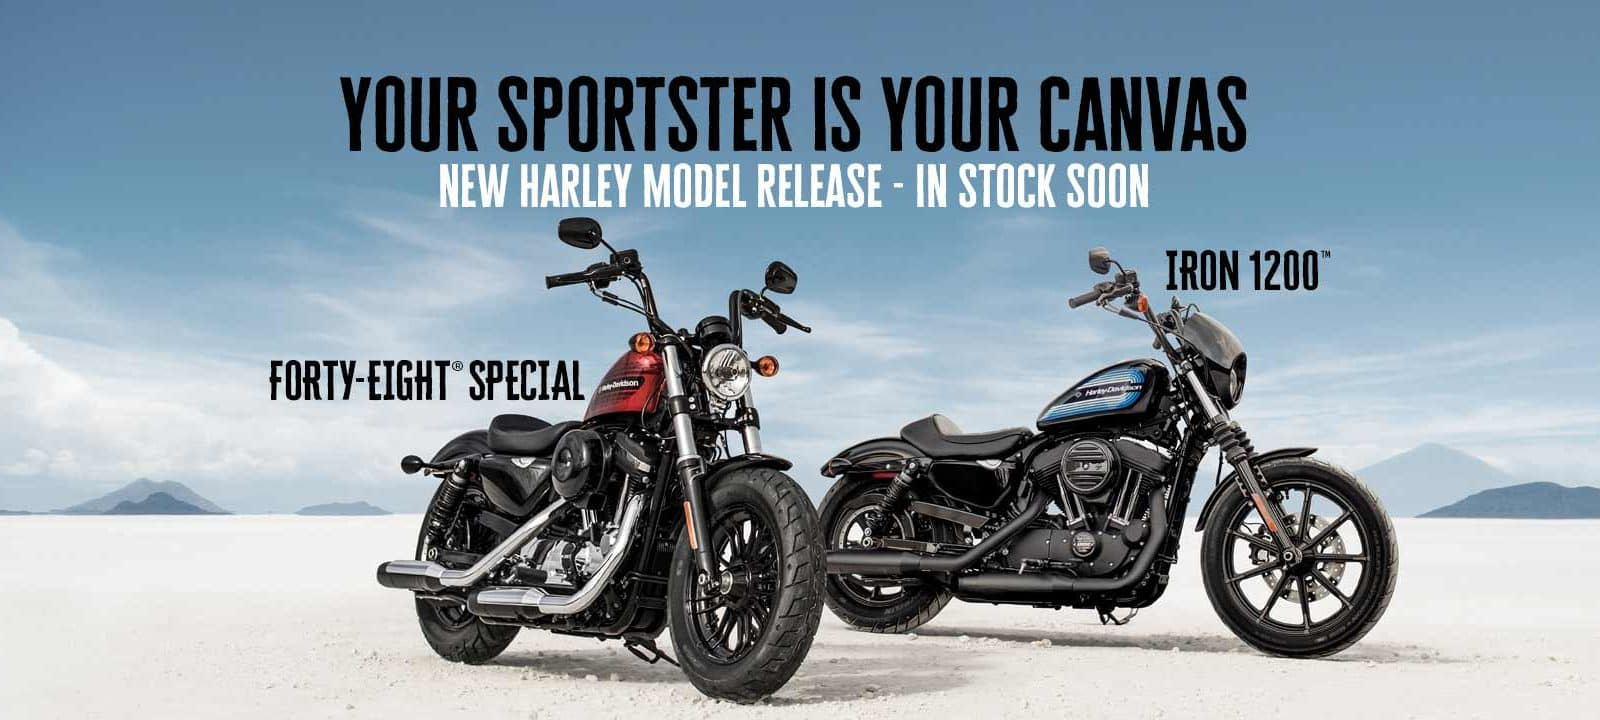 20180221-TMC-1800x720-Forty-Eight-Special-Iron-1200-Release